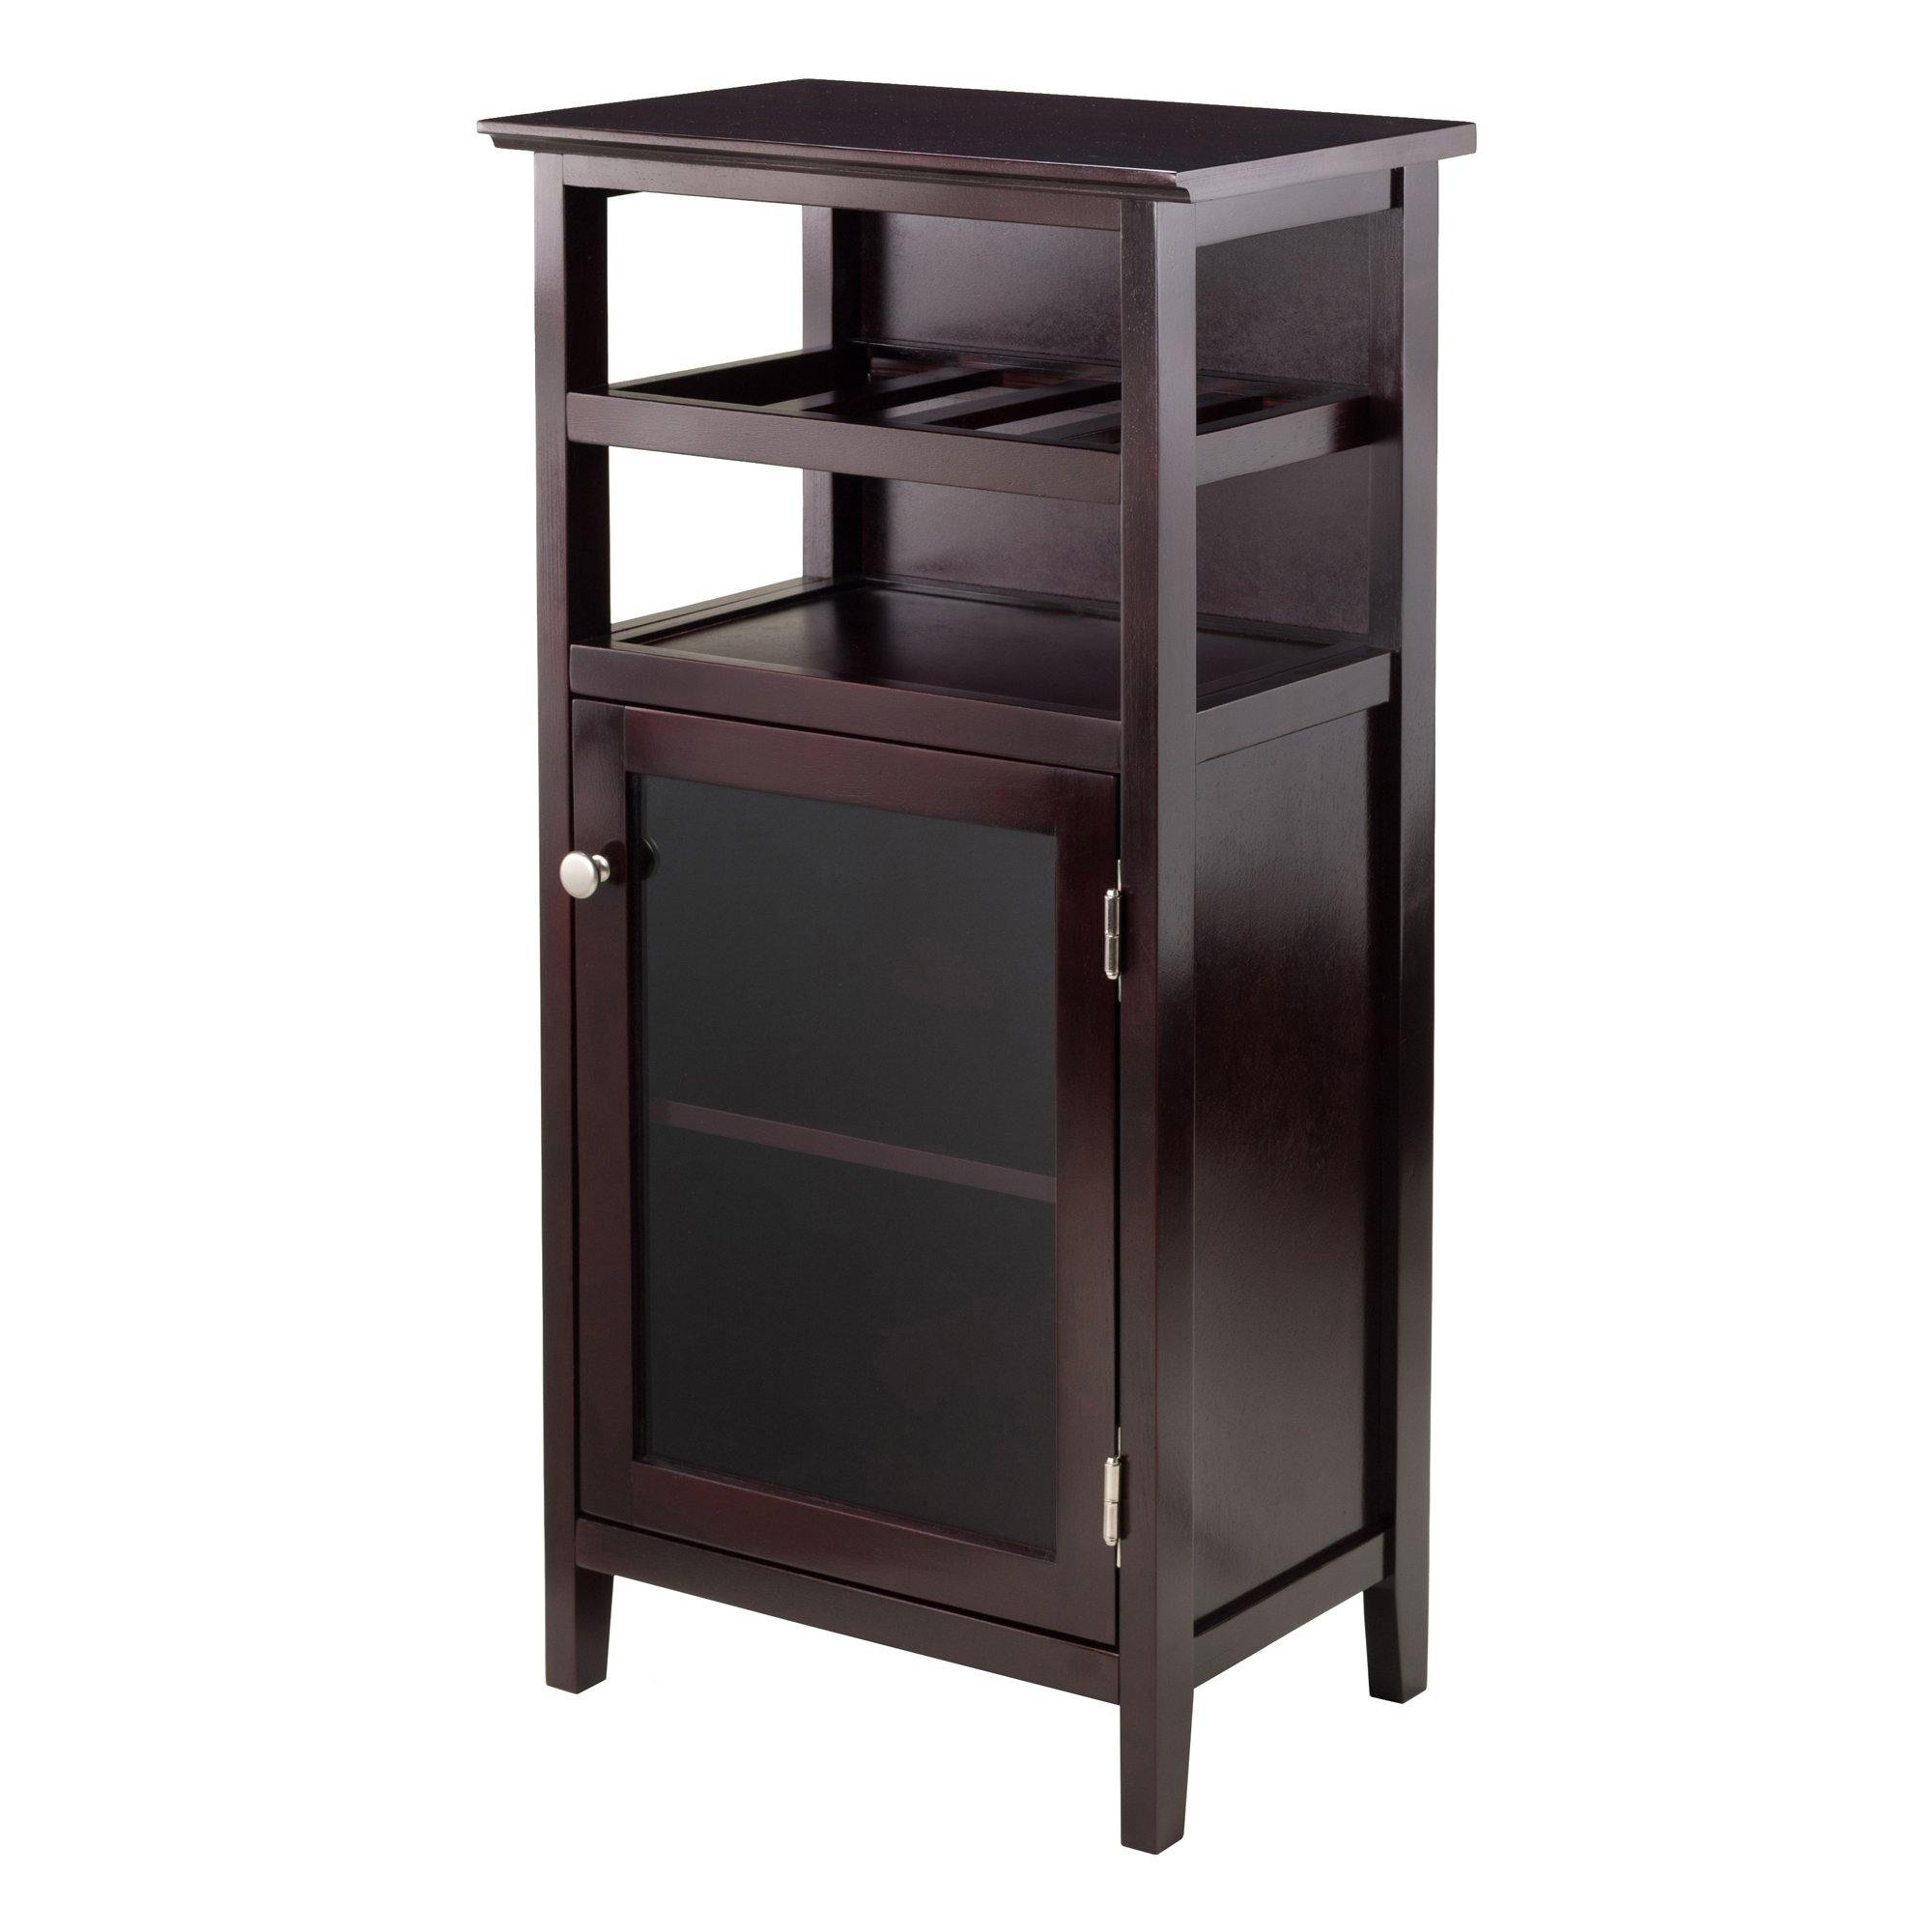 Alta Wine Cabinet - My USA Furniture